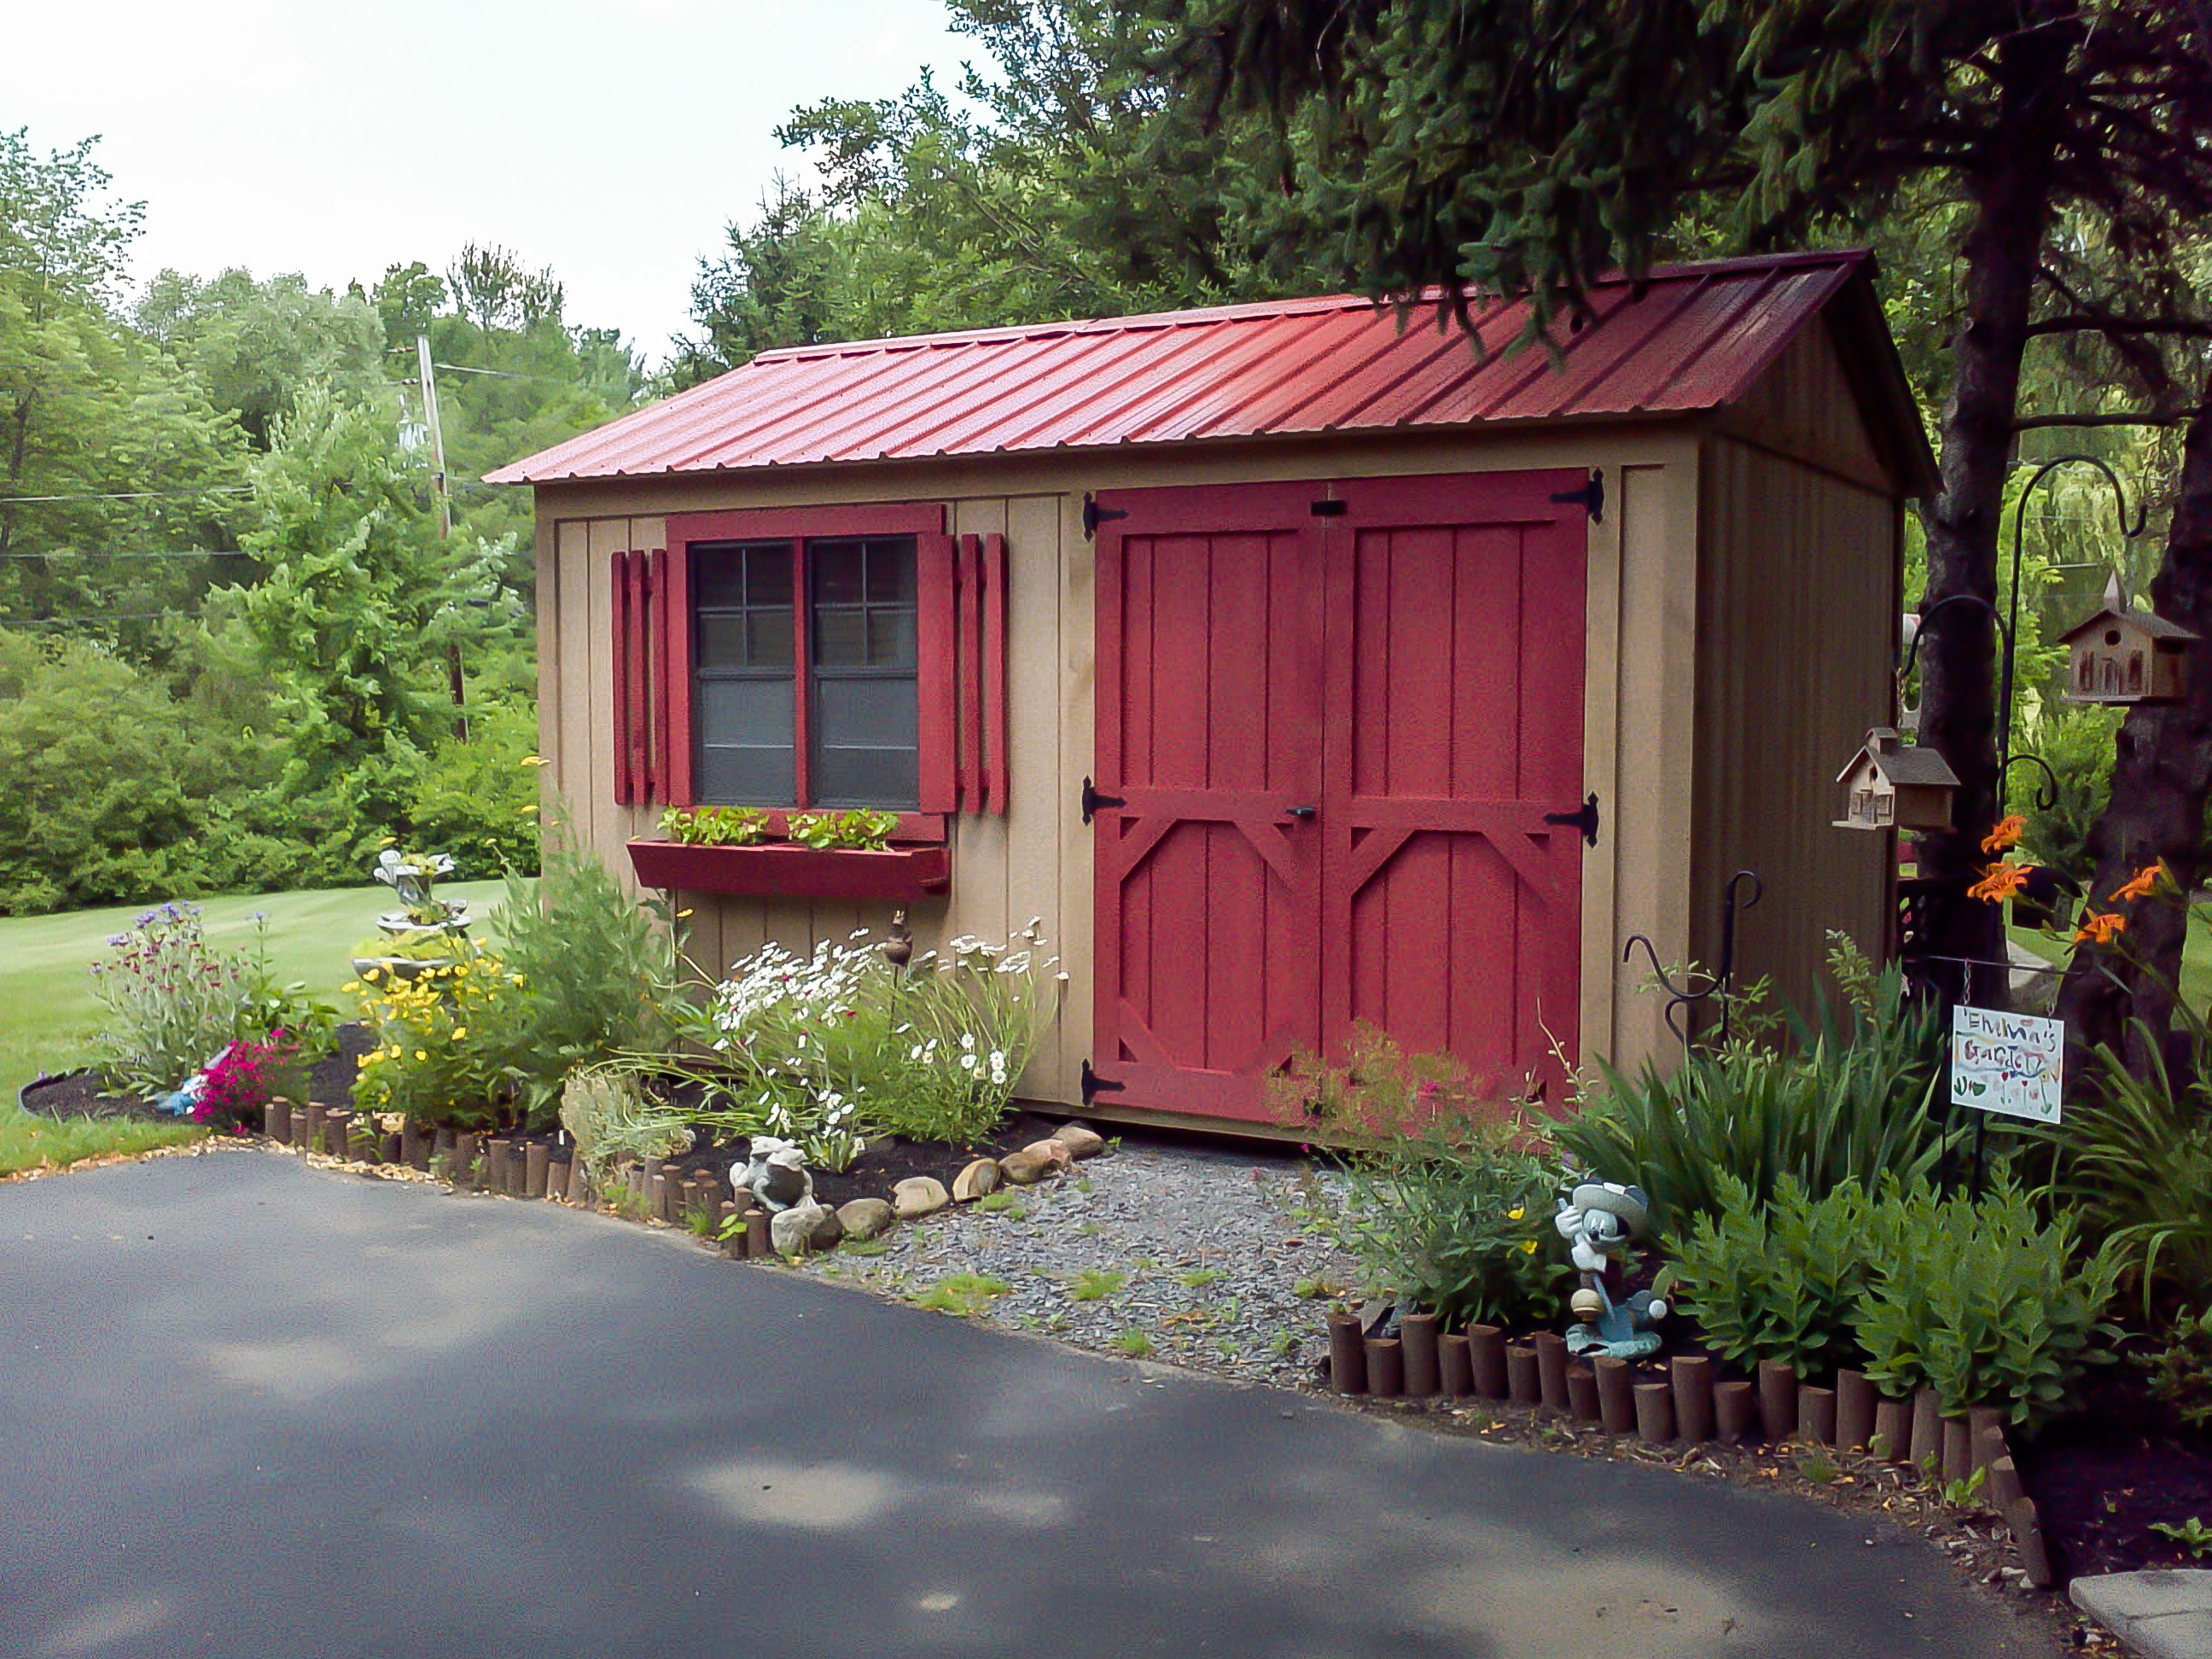 Garden Sheds Potting Sheds Completely Built To Suit Your Deck Boxes Western  Red Cedar Construction Add Storage To Your Garden With Personalized